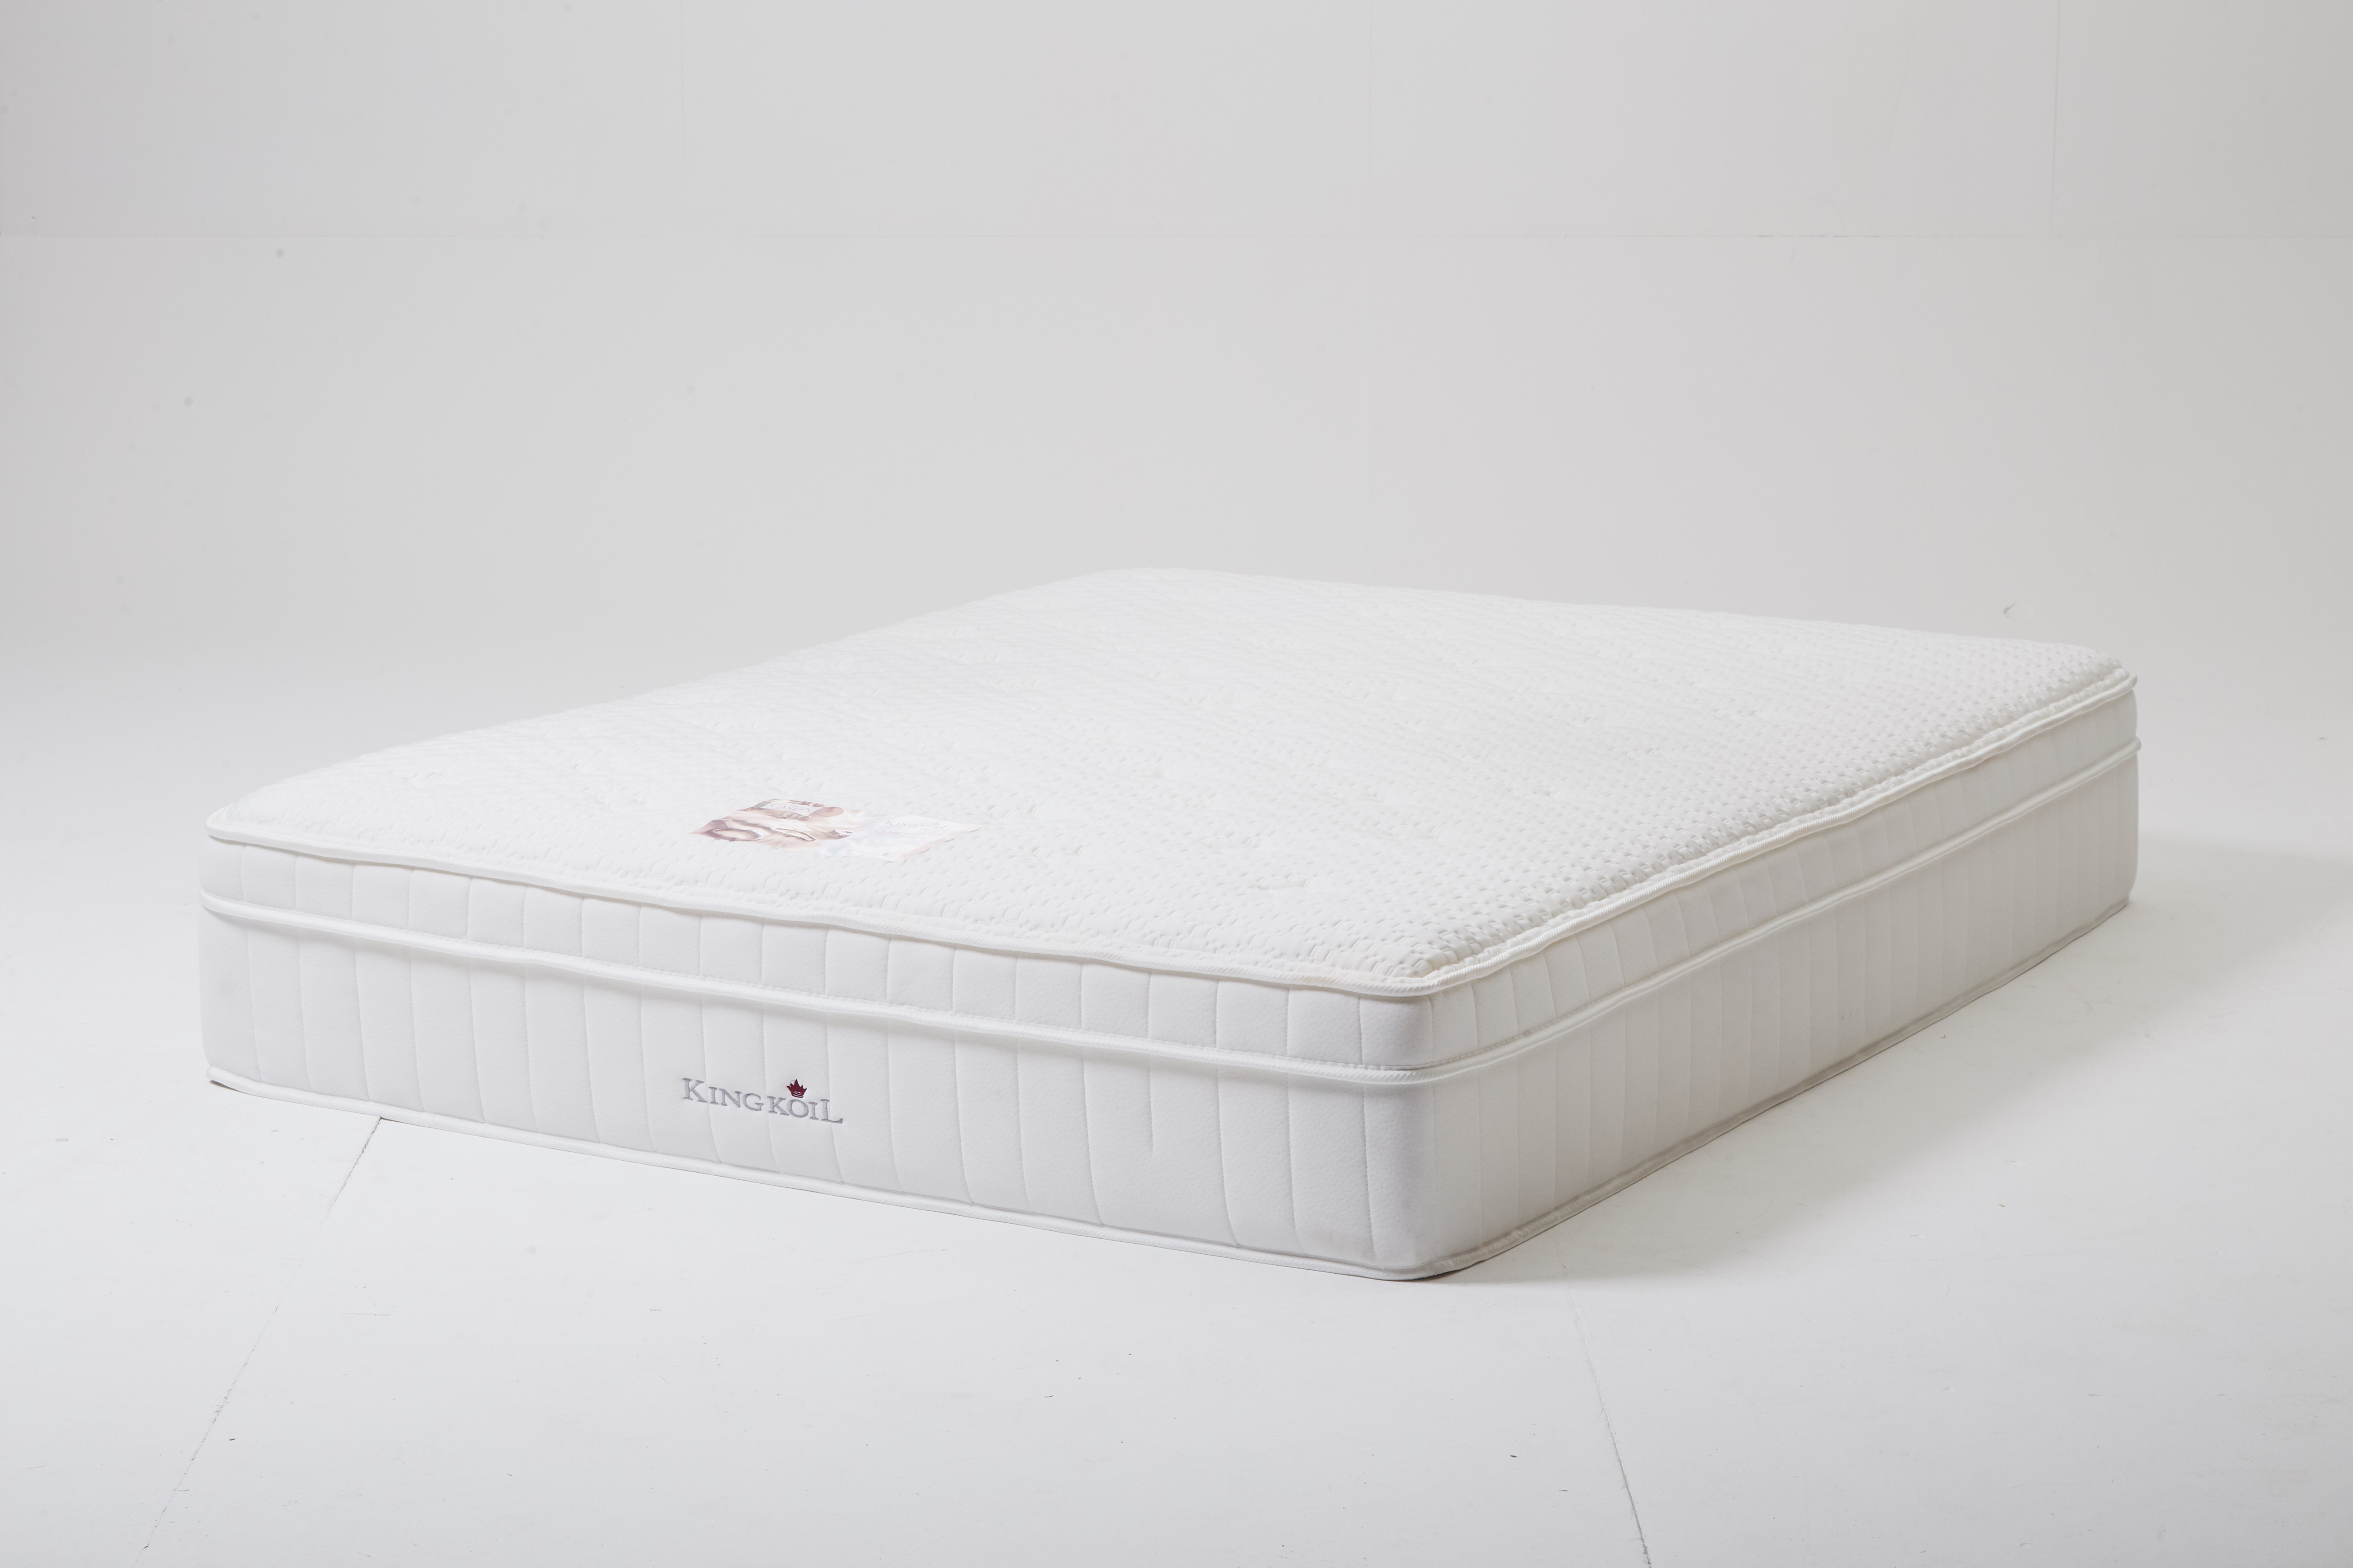 King Koil Celebration 2200 Mattress